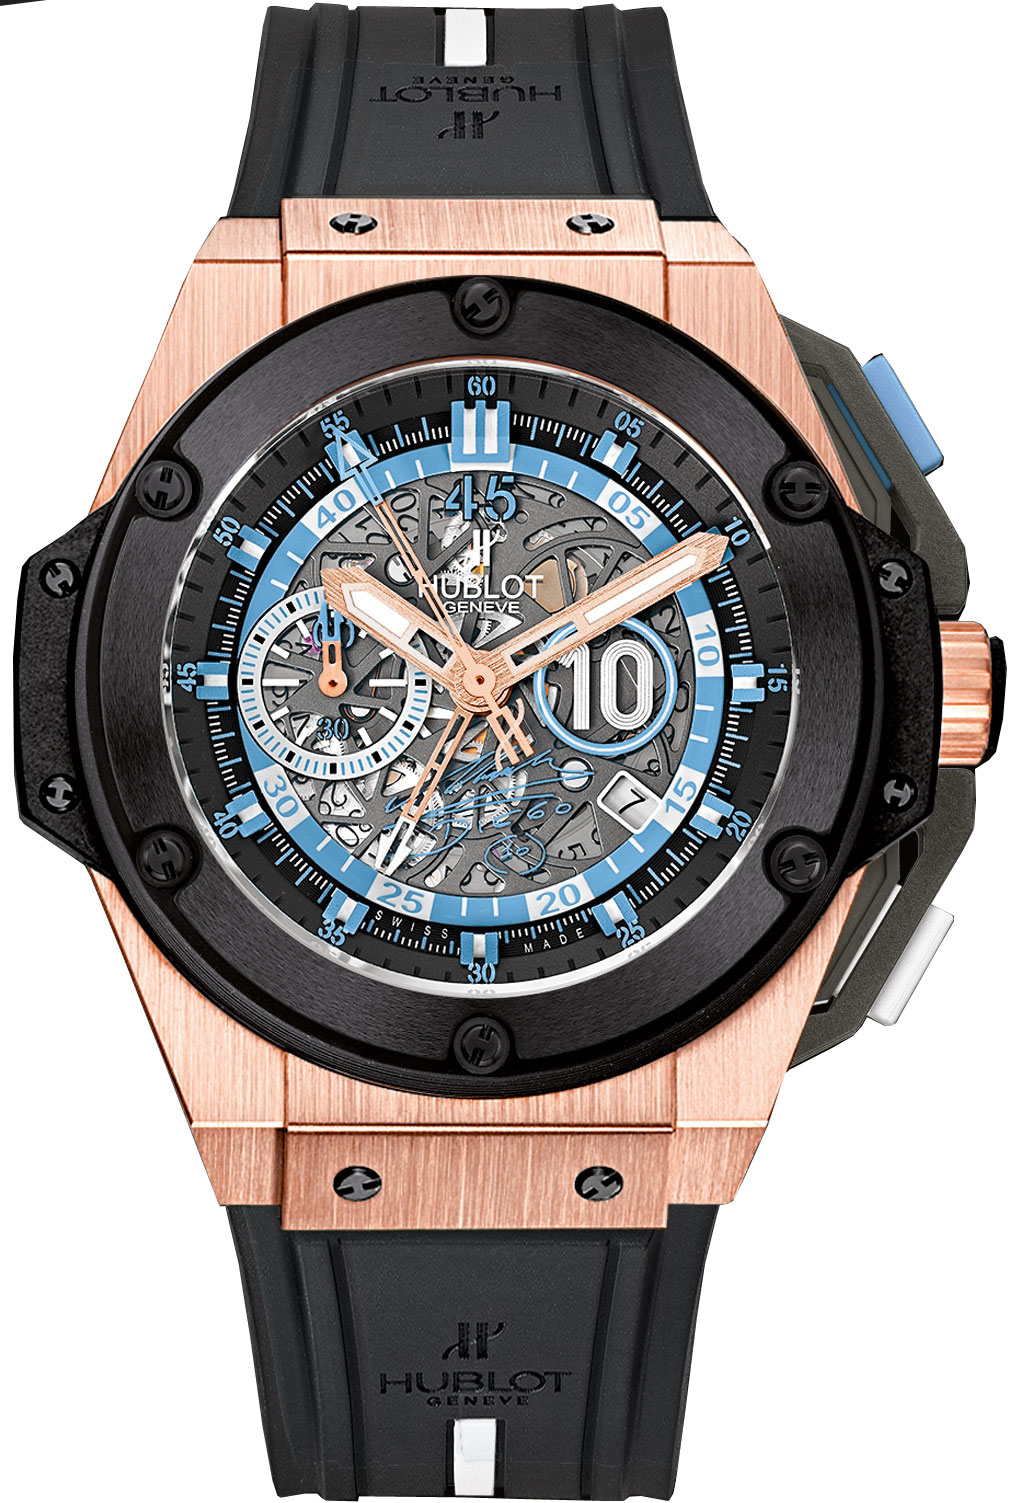 716.OM.1129.RX.DMA12 Hublot King Power Maradona Mens Watch